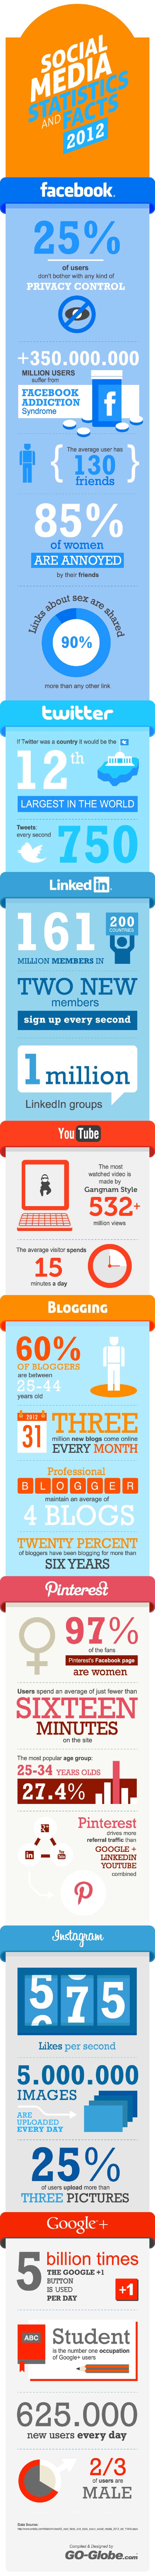 The latest social media statistics for 2012